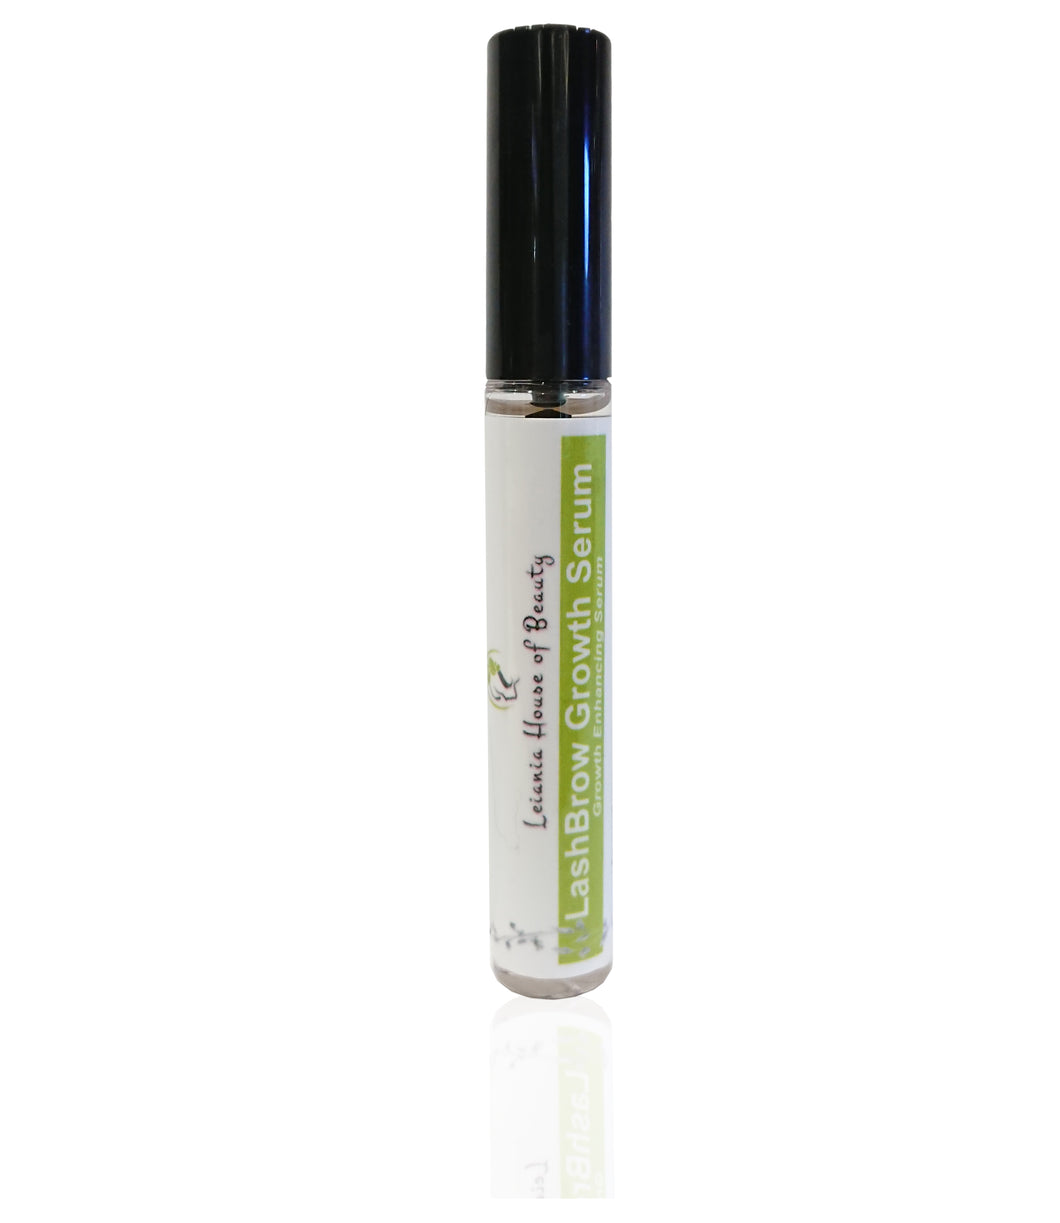 Organic Eyelash/Eyebrow Growth Enhancing Serum